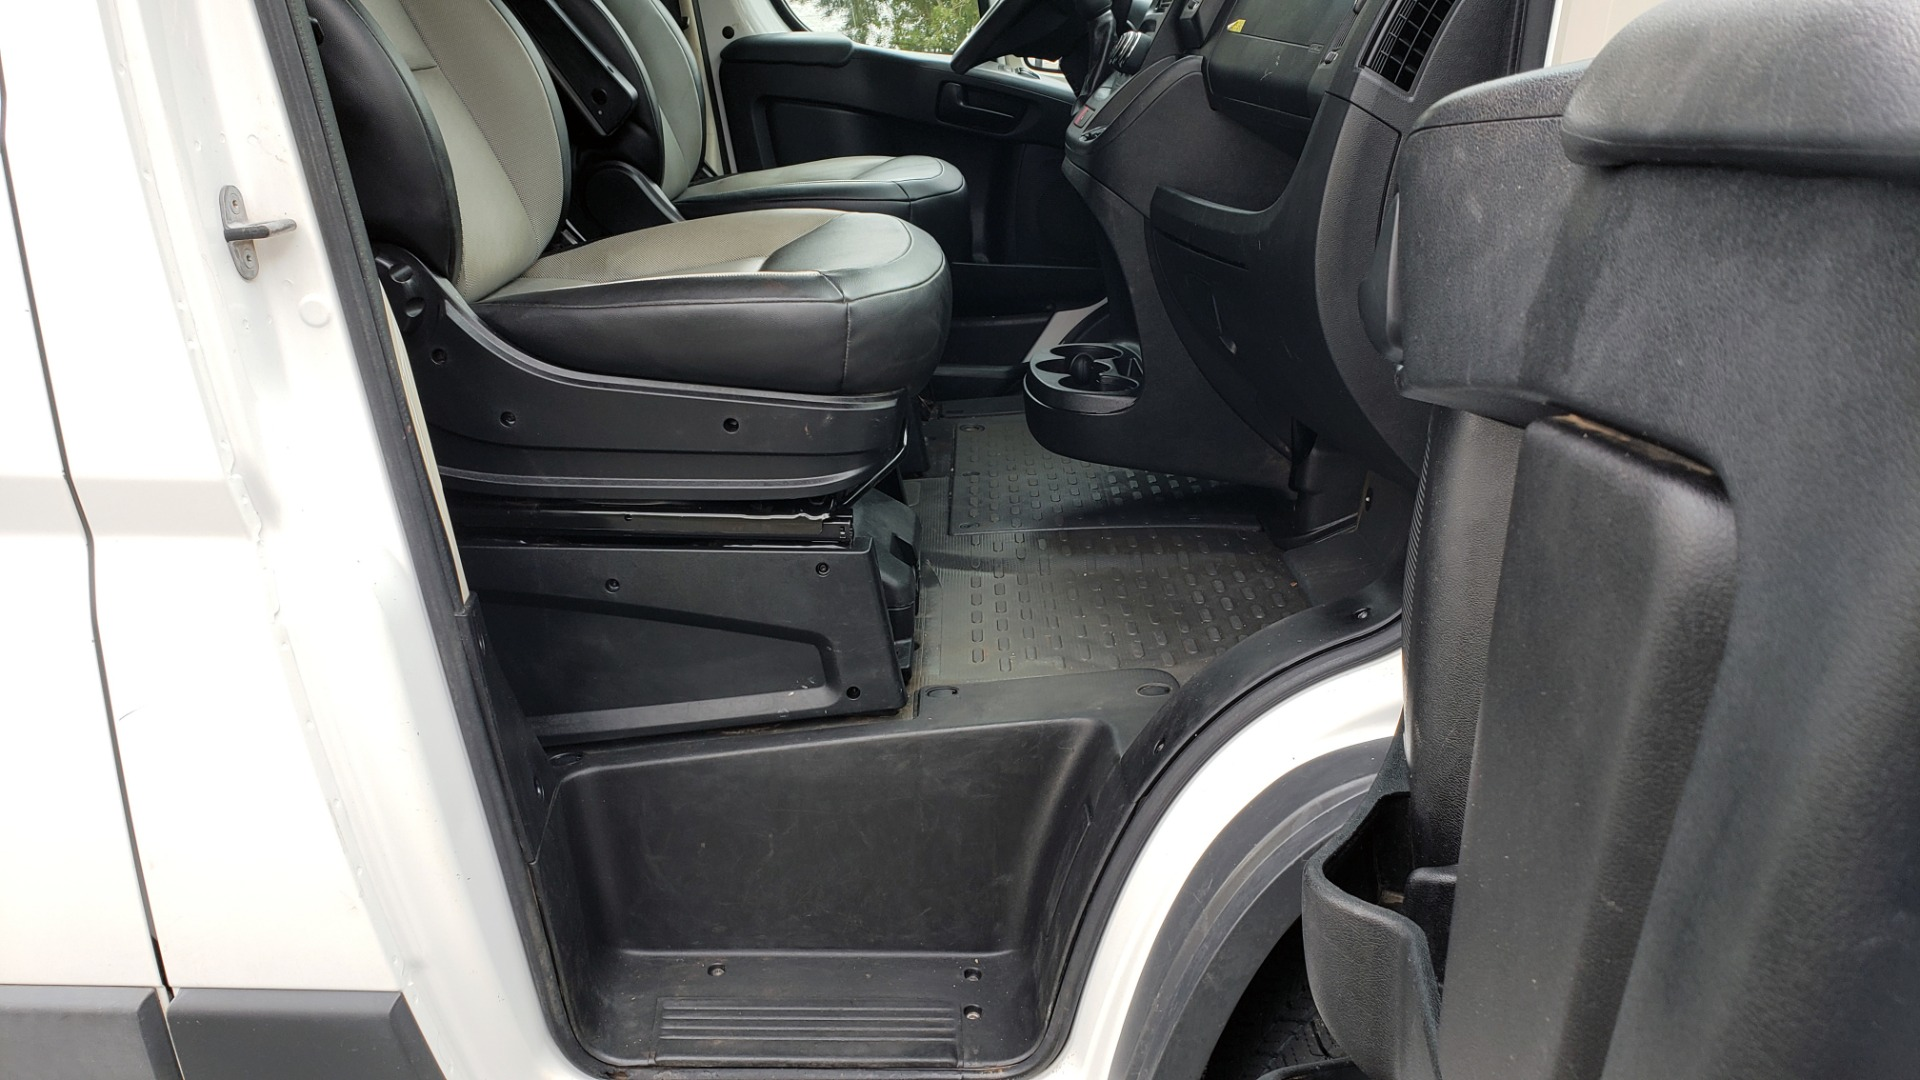 Used 2015 Ram PROMASTER CARGO VAN 136-INCH WB / LOW ROOF / LADDER RACK / INSIDE RACKS for sale Sold at Formula Imports in Charlotte NC 28227 51